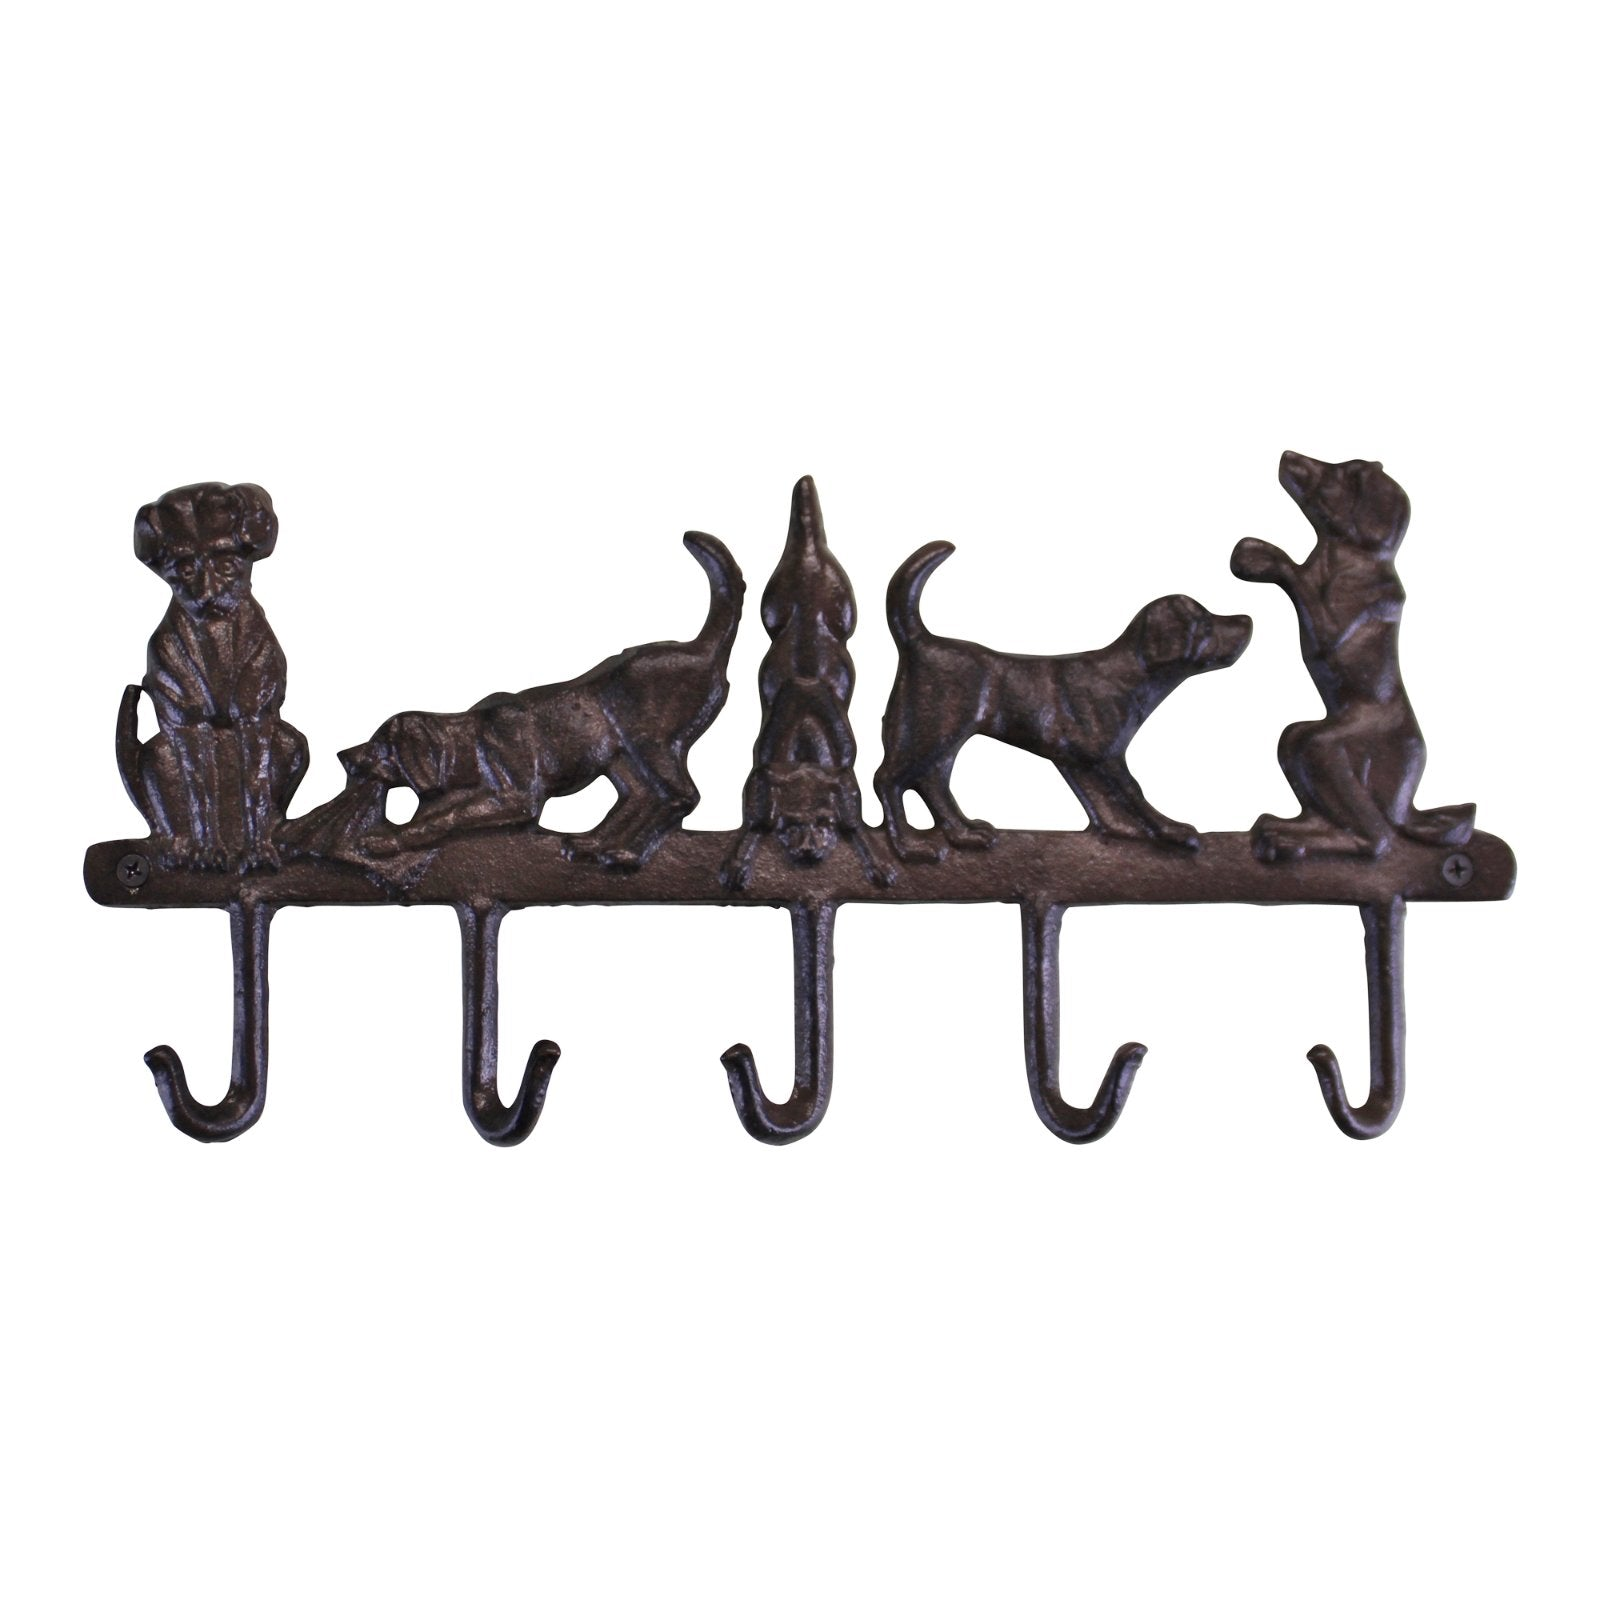 Rustic Cast Iron Wall Hooks, Playful Dog Design With 5 Hooks, Arts & Entertainment by Gifts24-7